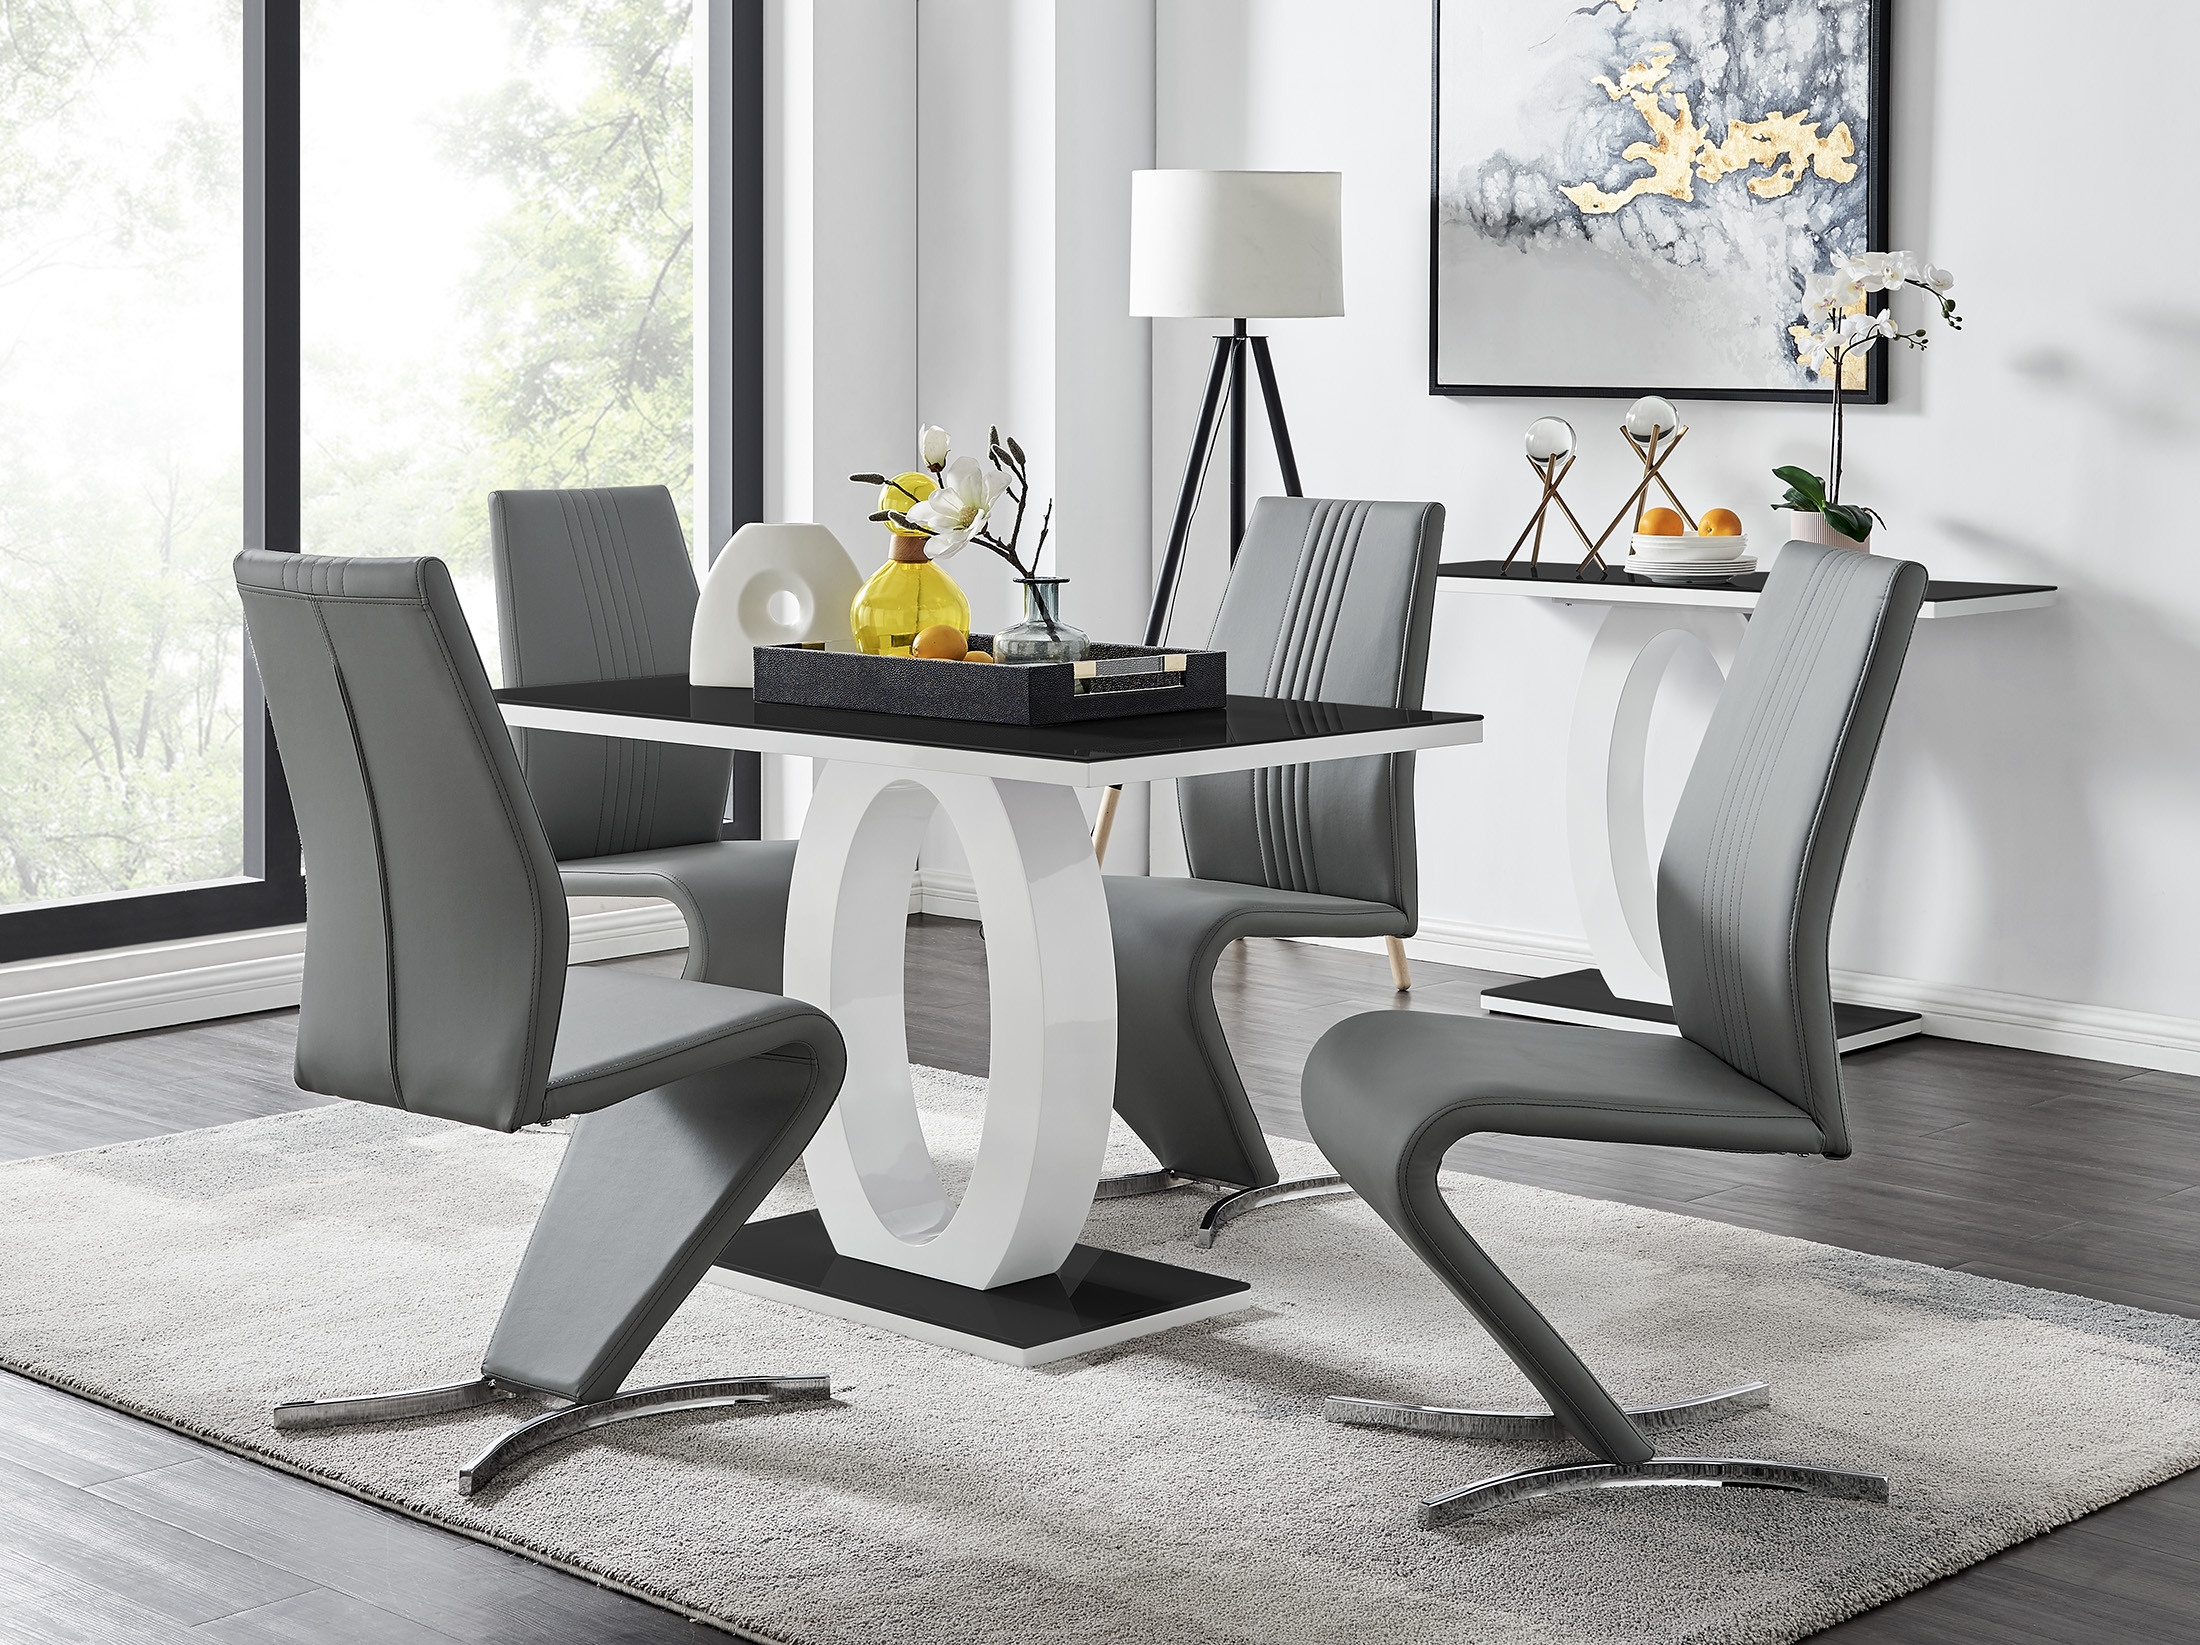 Black White High Gloss Dining Table, Dining Room Chairs Set Of 6 Black And White